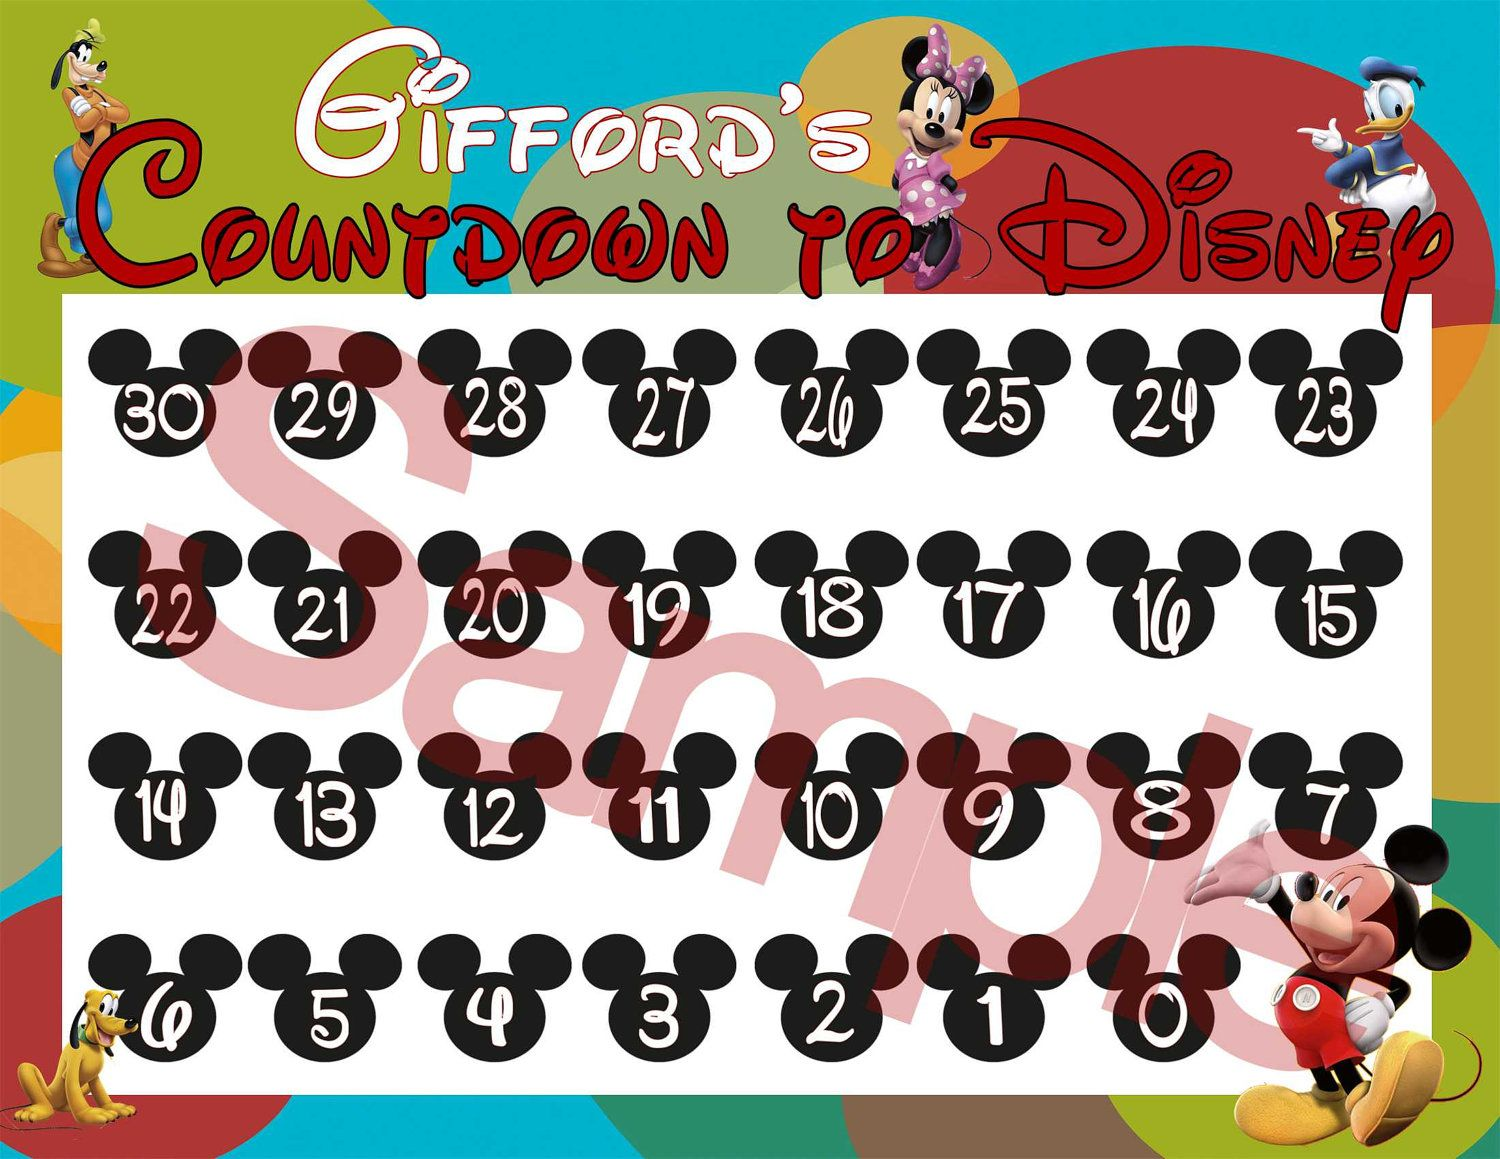 Cute Too Bad Hudson S Countdown Will Only Have One